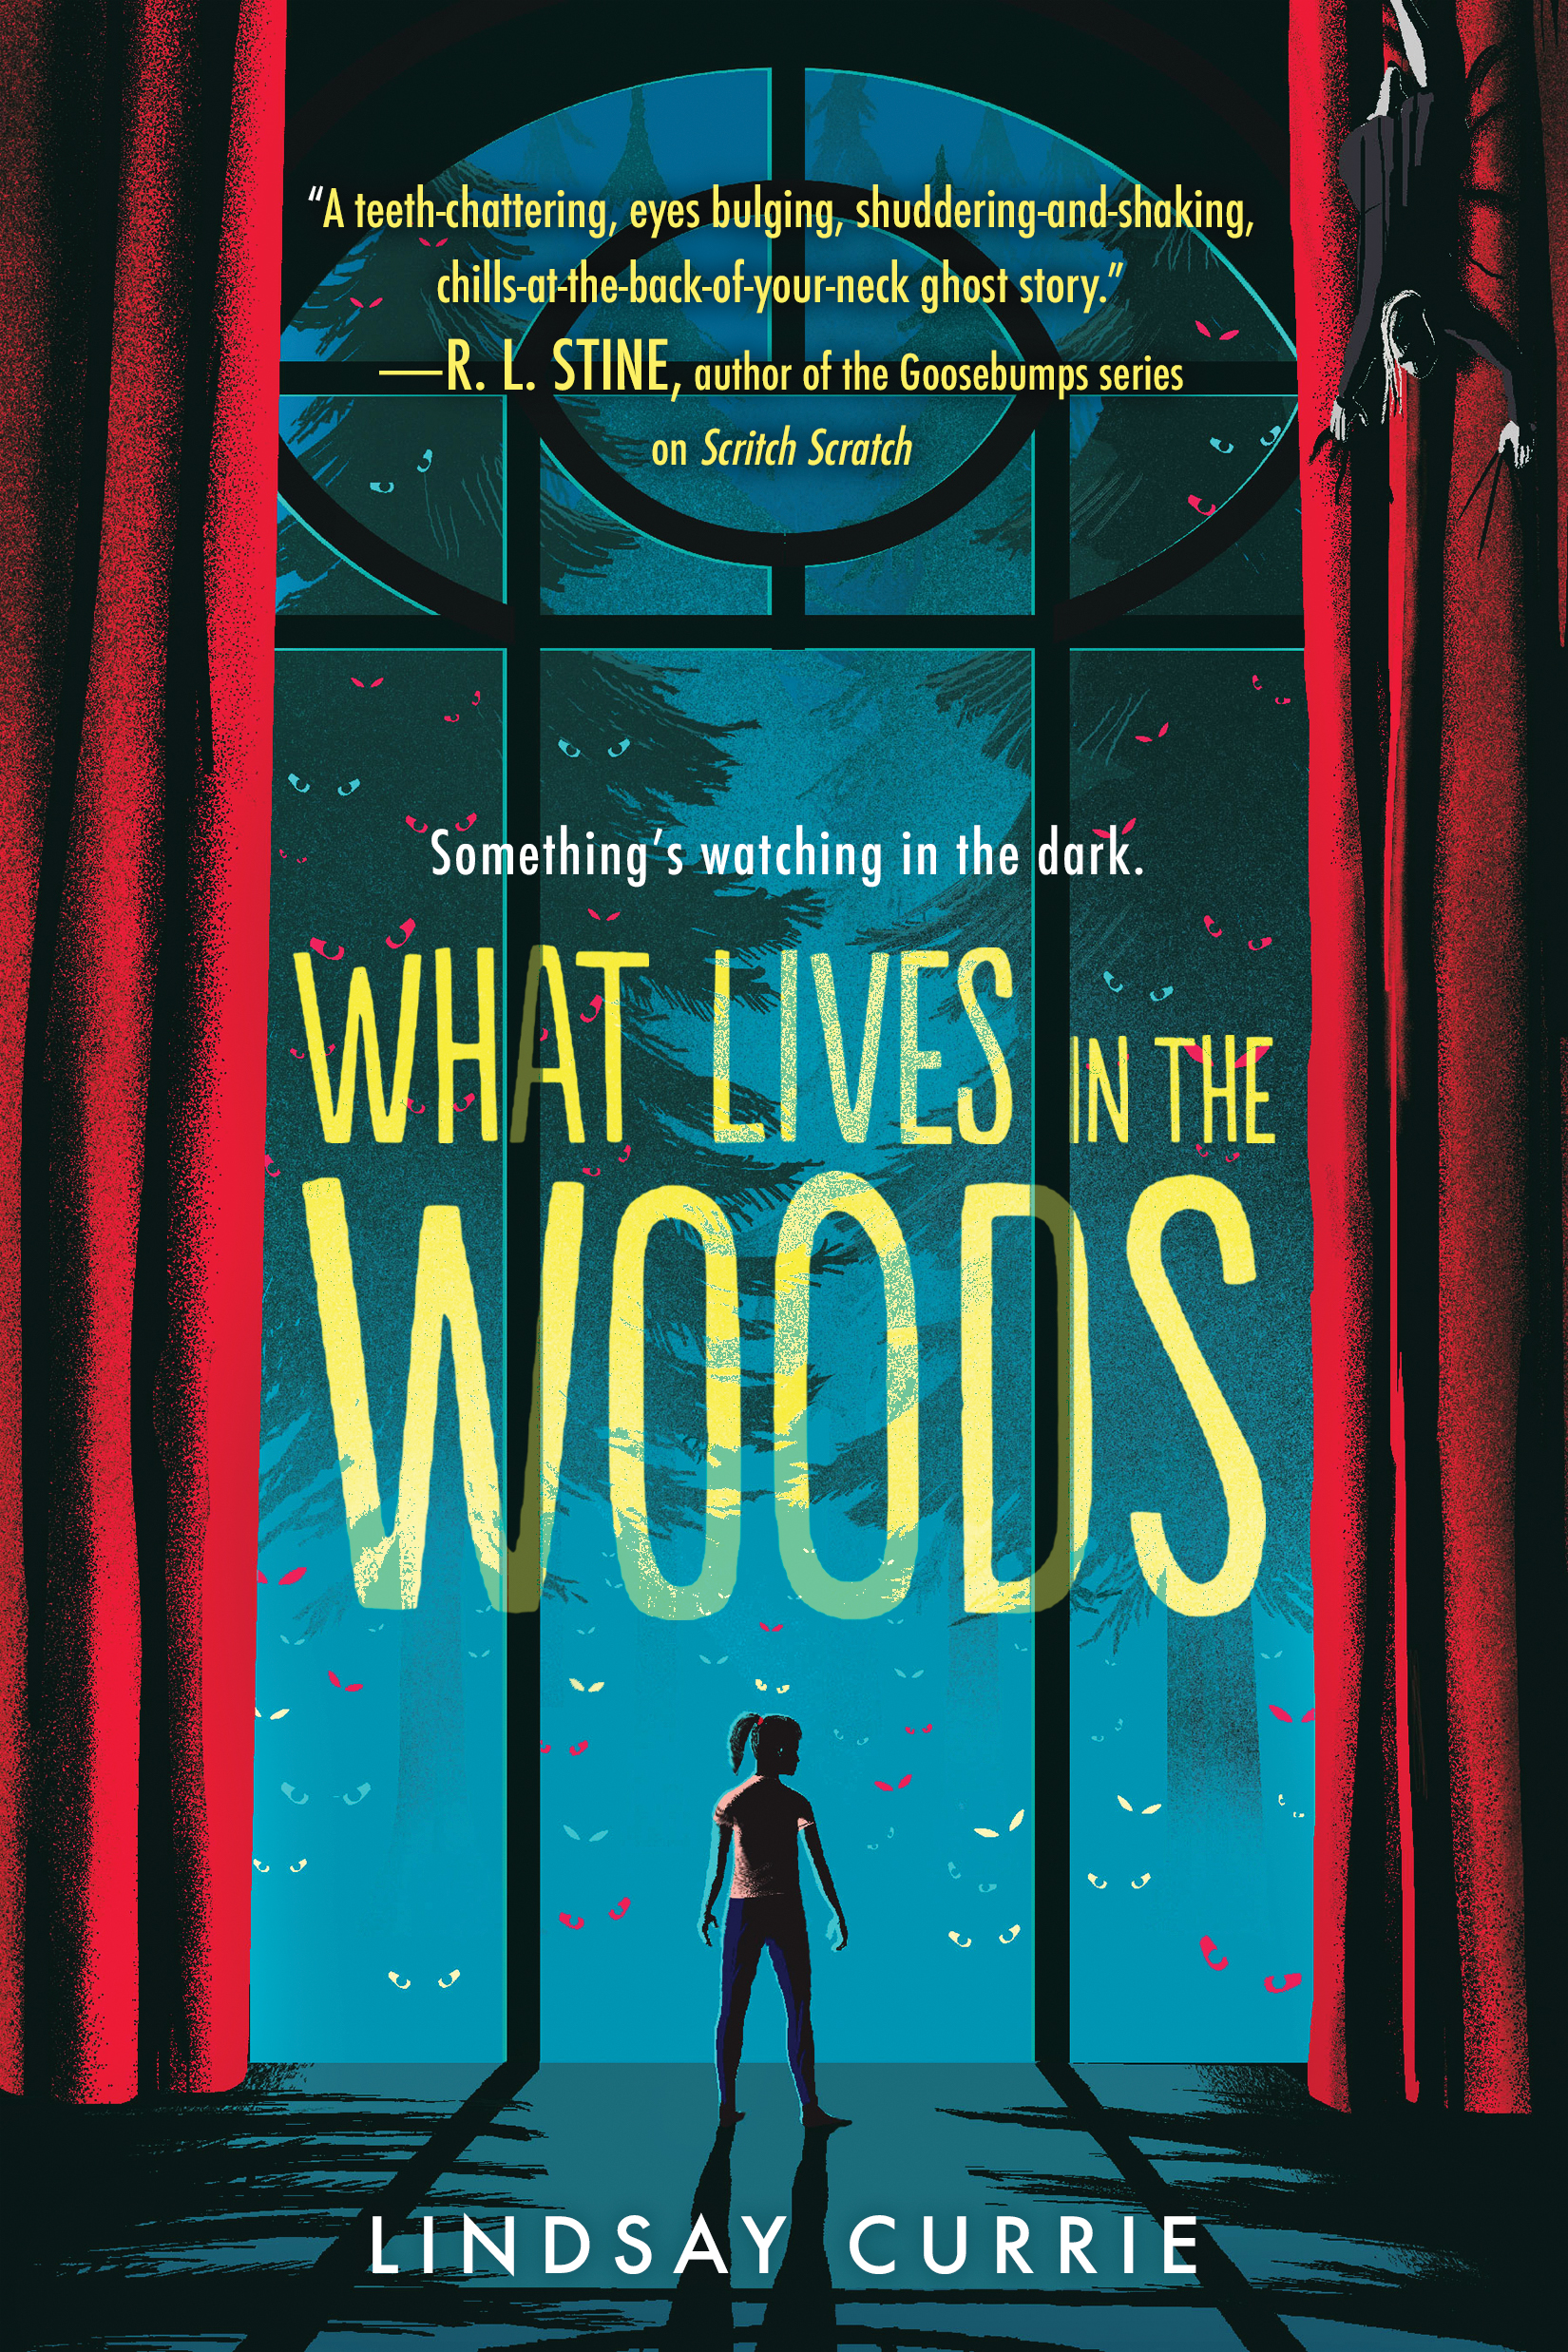 What Lives in the Woods by Lindsay Currie